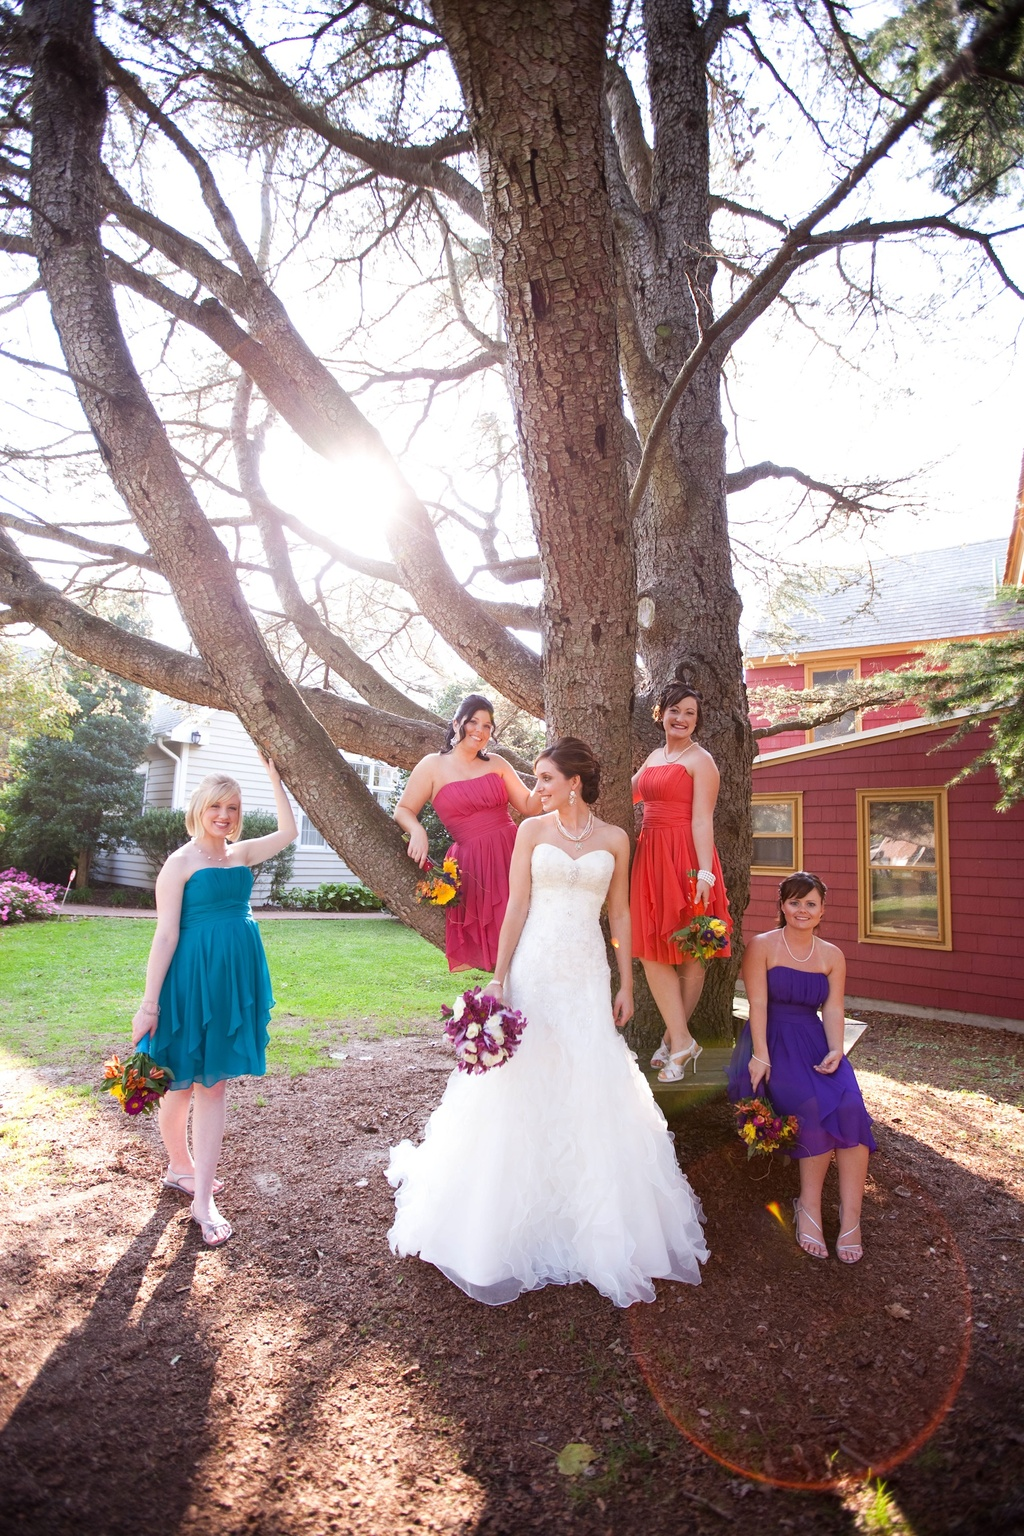 Outdoor-wedding-in-delaware-mix-and-match-bridesmaids-2.full